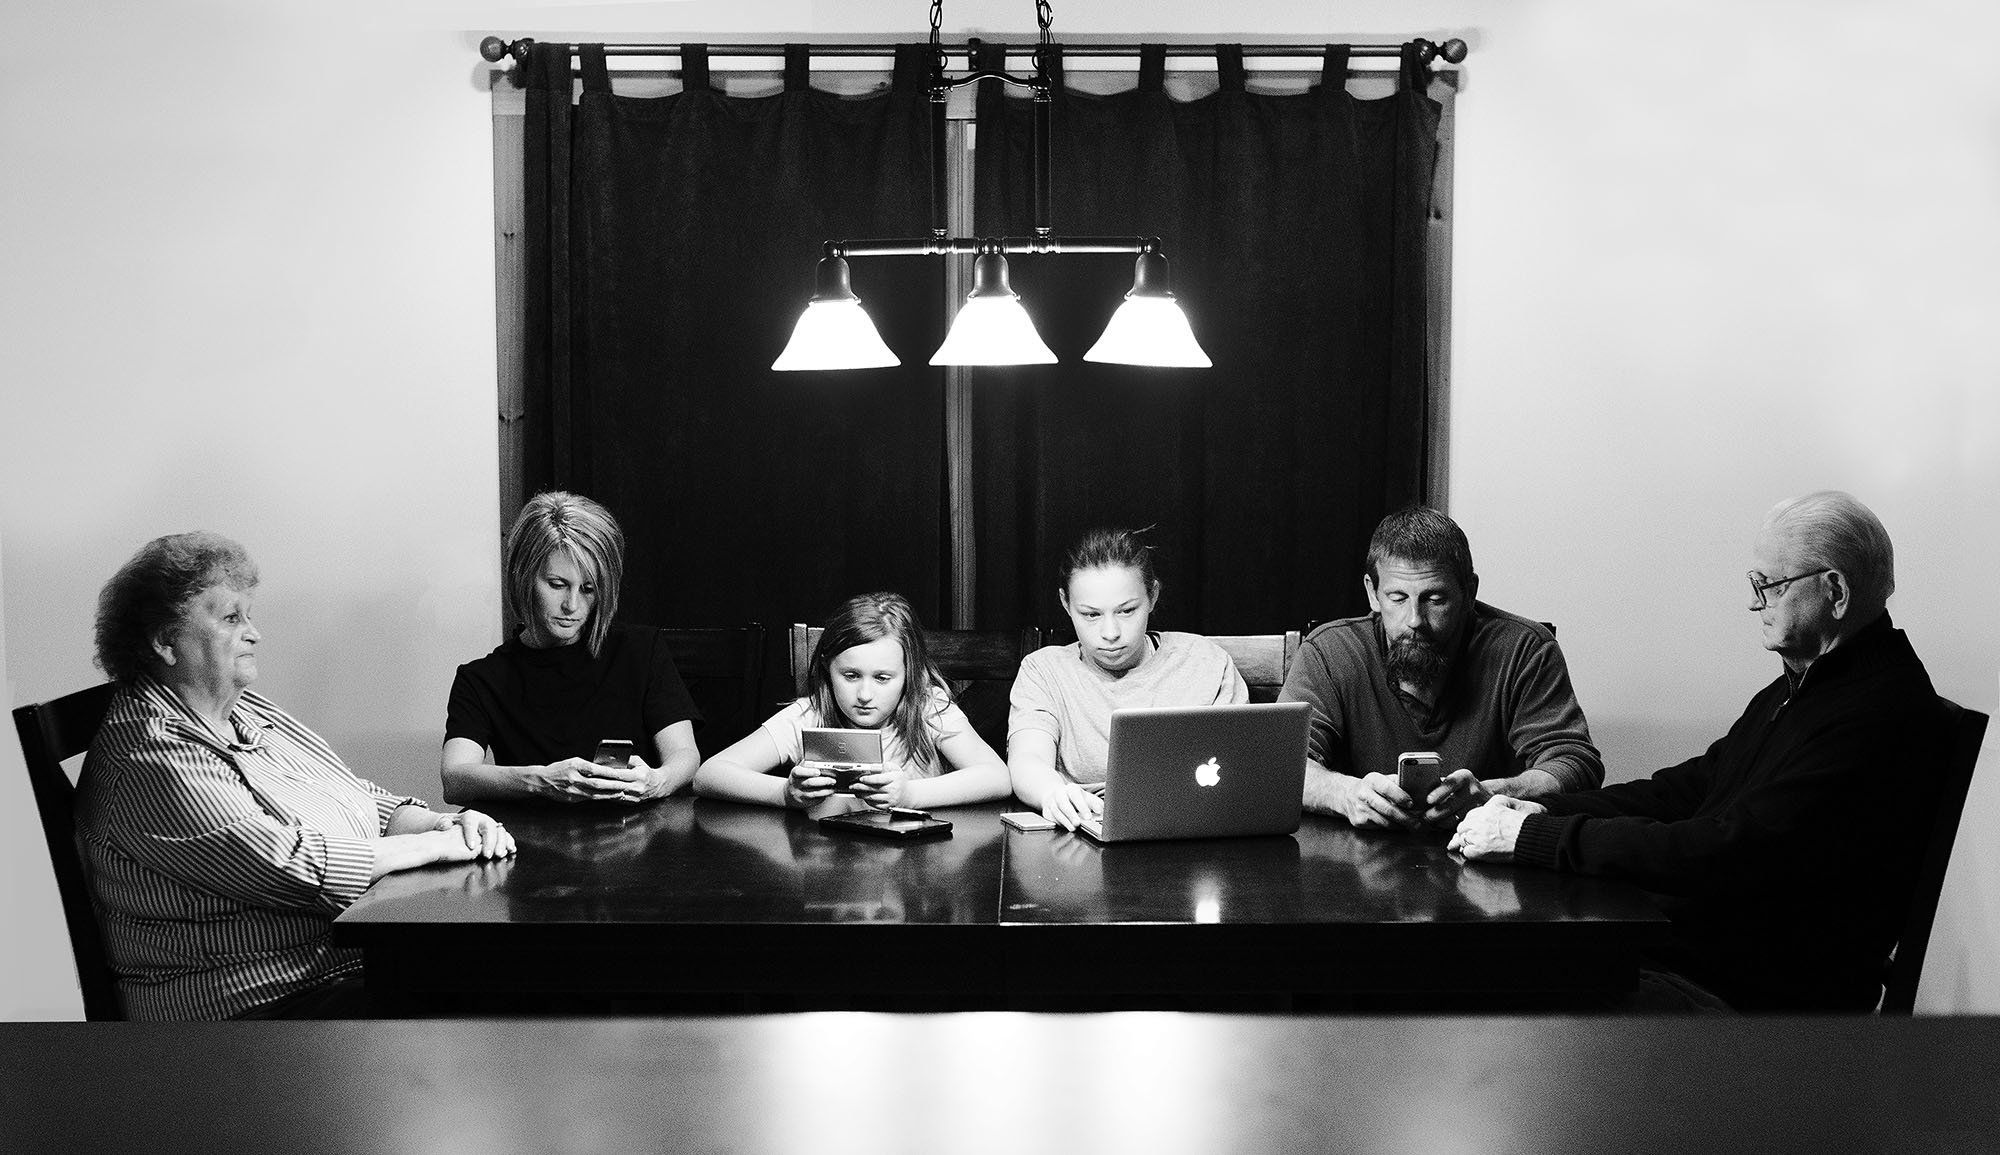 Chelsey Hale's photos show how often families turn to social media.